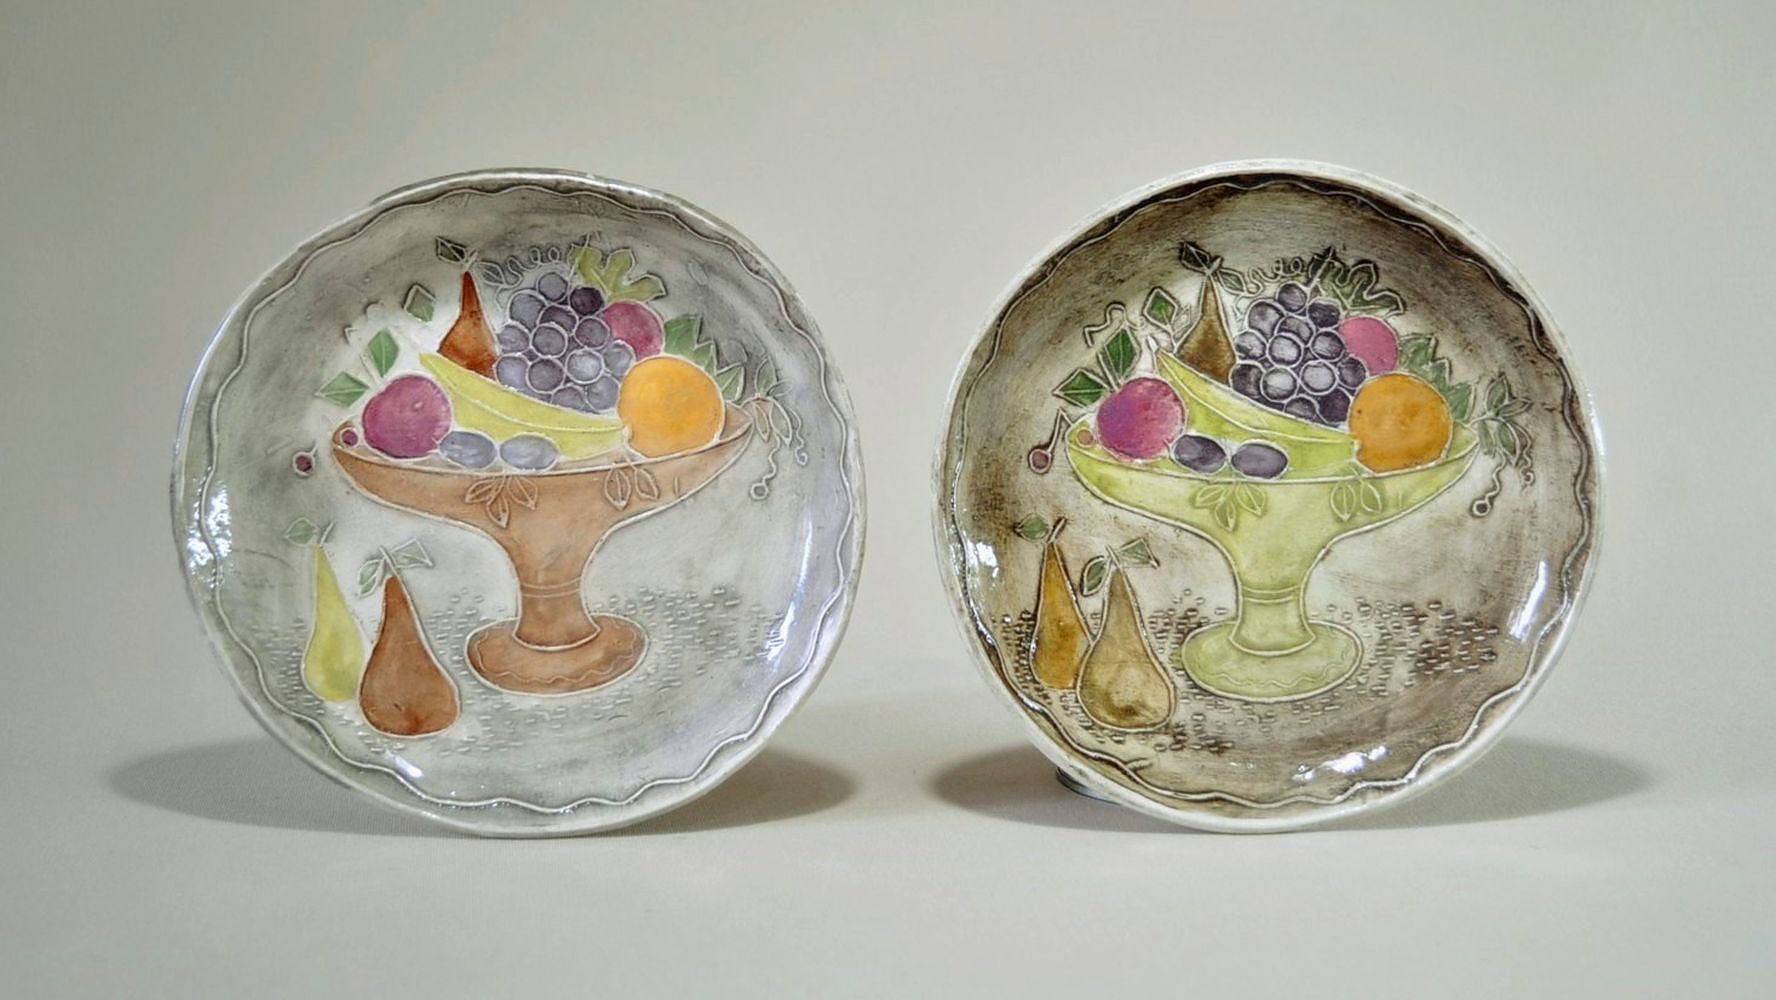 'JONES, Frances (1923-1999) (2) 2 Buff Earthenware Dishes. Press moulded with compote of fruit, multicoloured glaze decoration. Incised to base Frances Jones Studio Sydney '